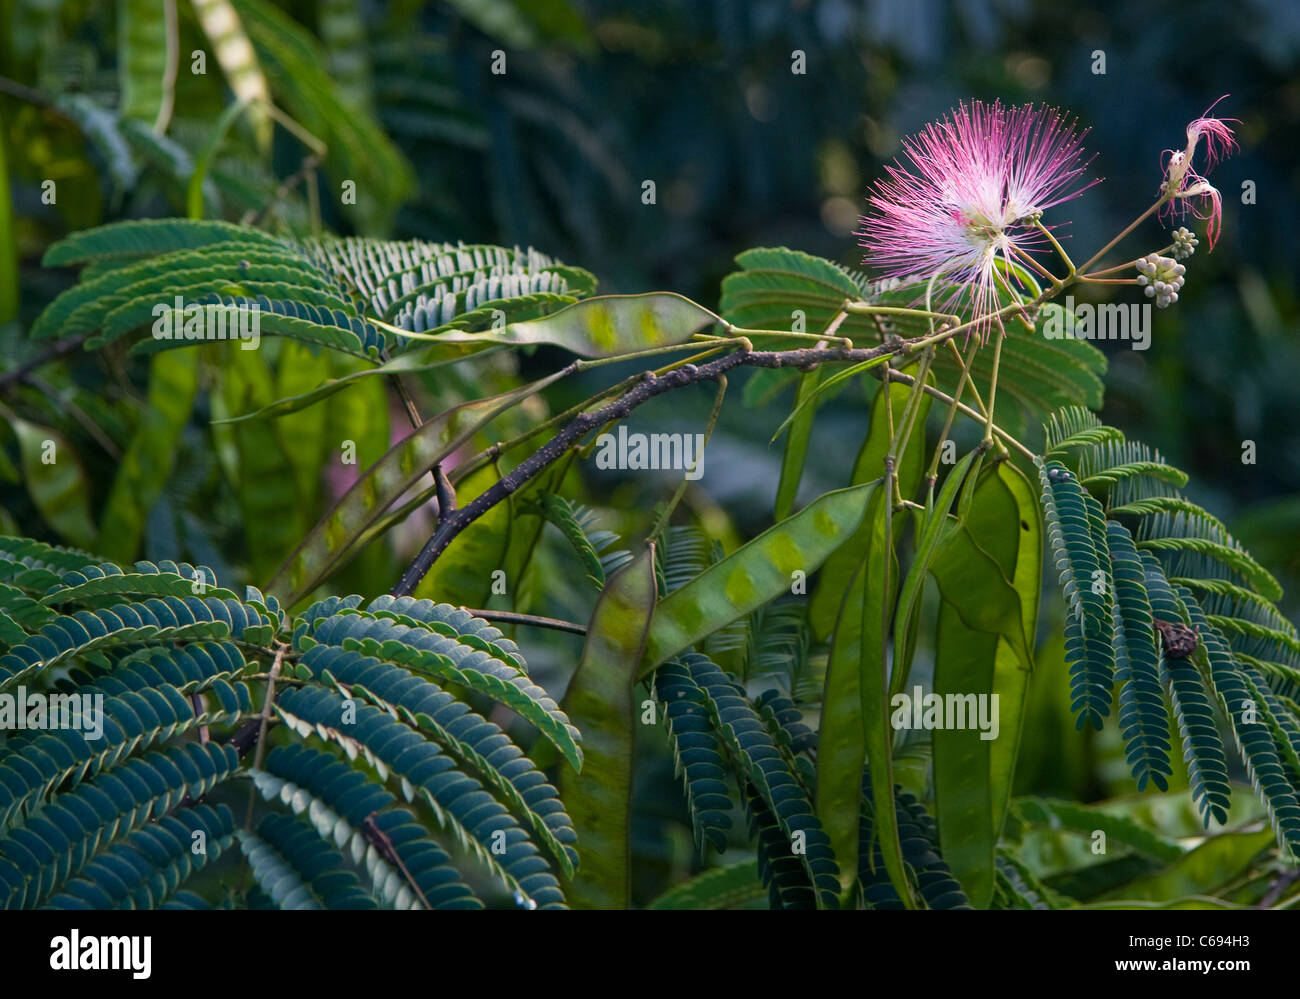 Silk Tree Albizia With Flowers And Seed Pods Stock Photo 38309855